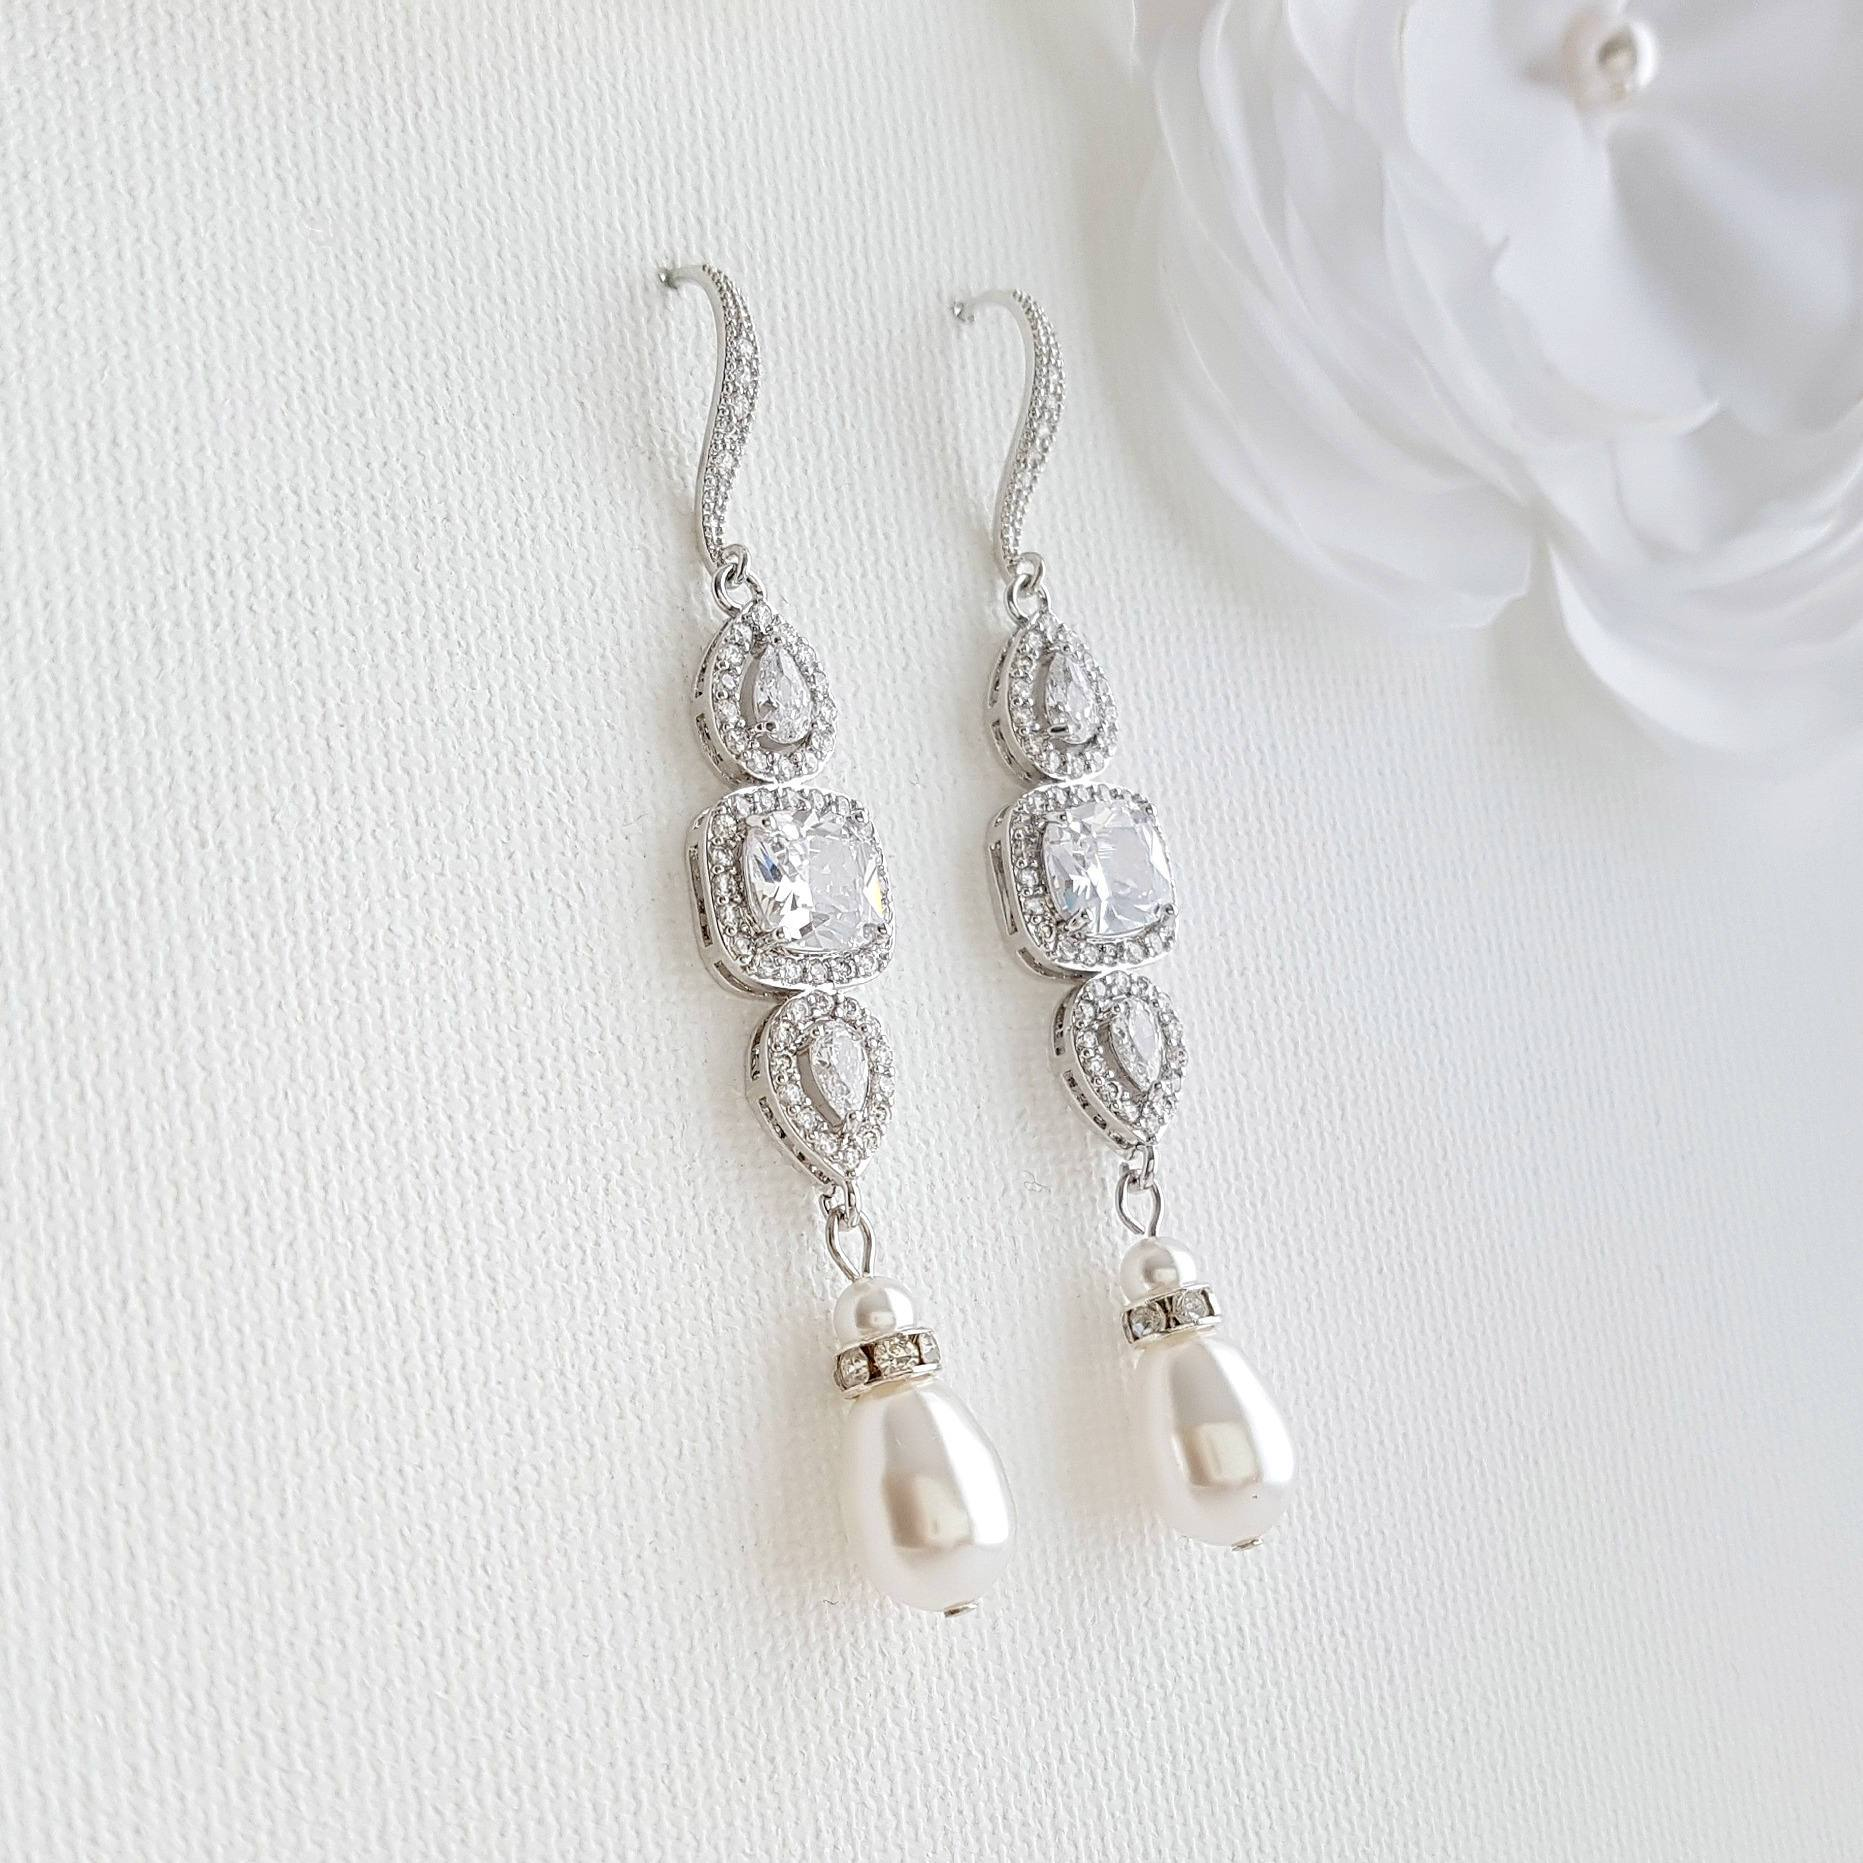 Pearl Drop Long Dangle Earrings for Weddings-Gianna - PoetryDesigns